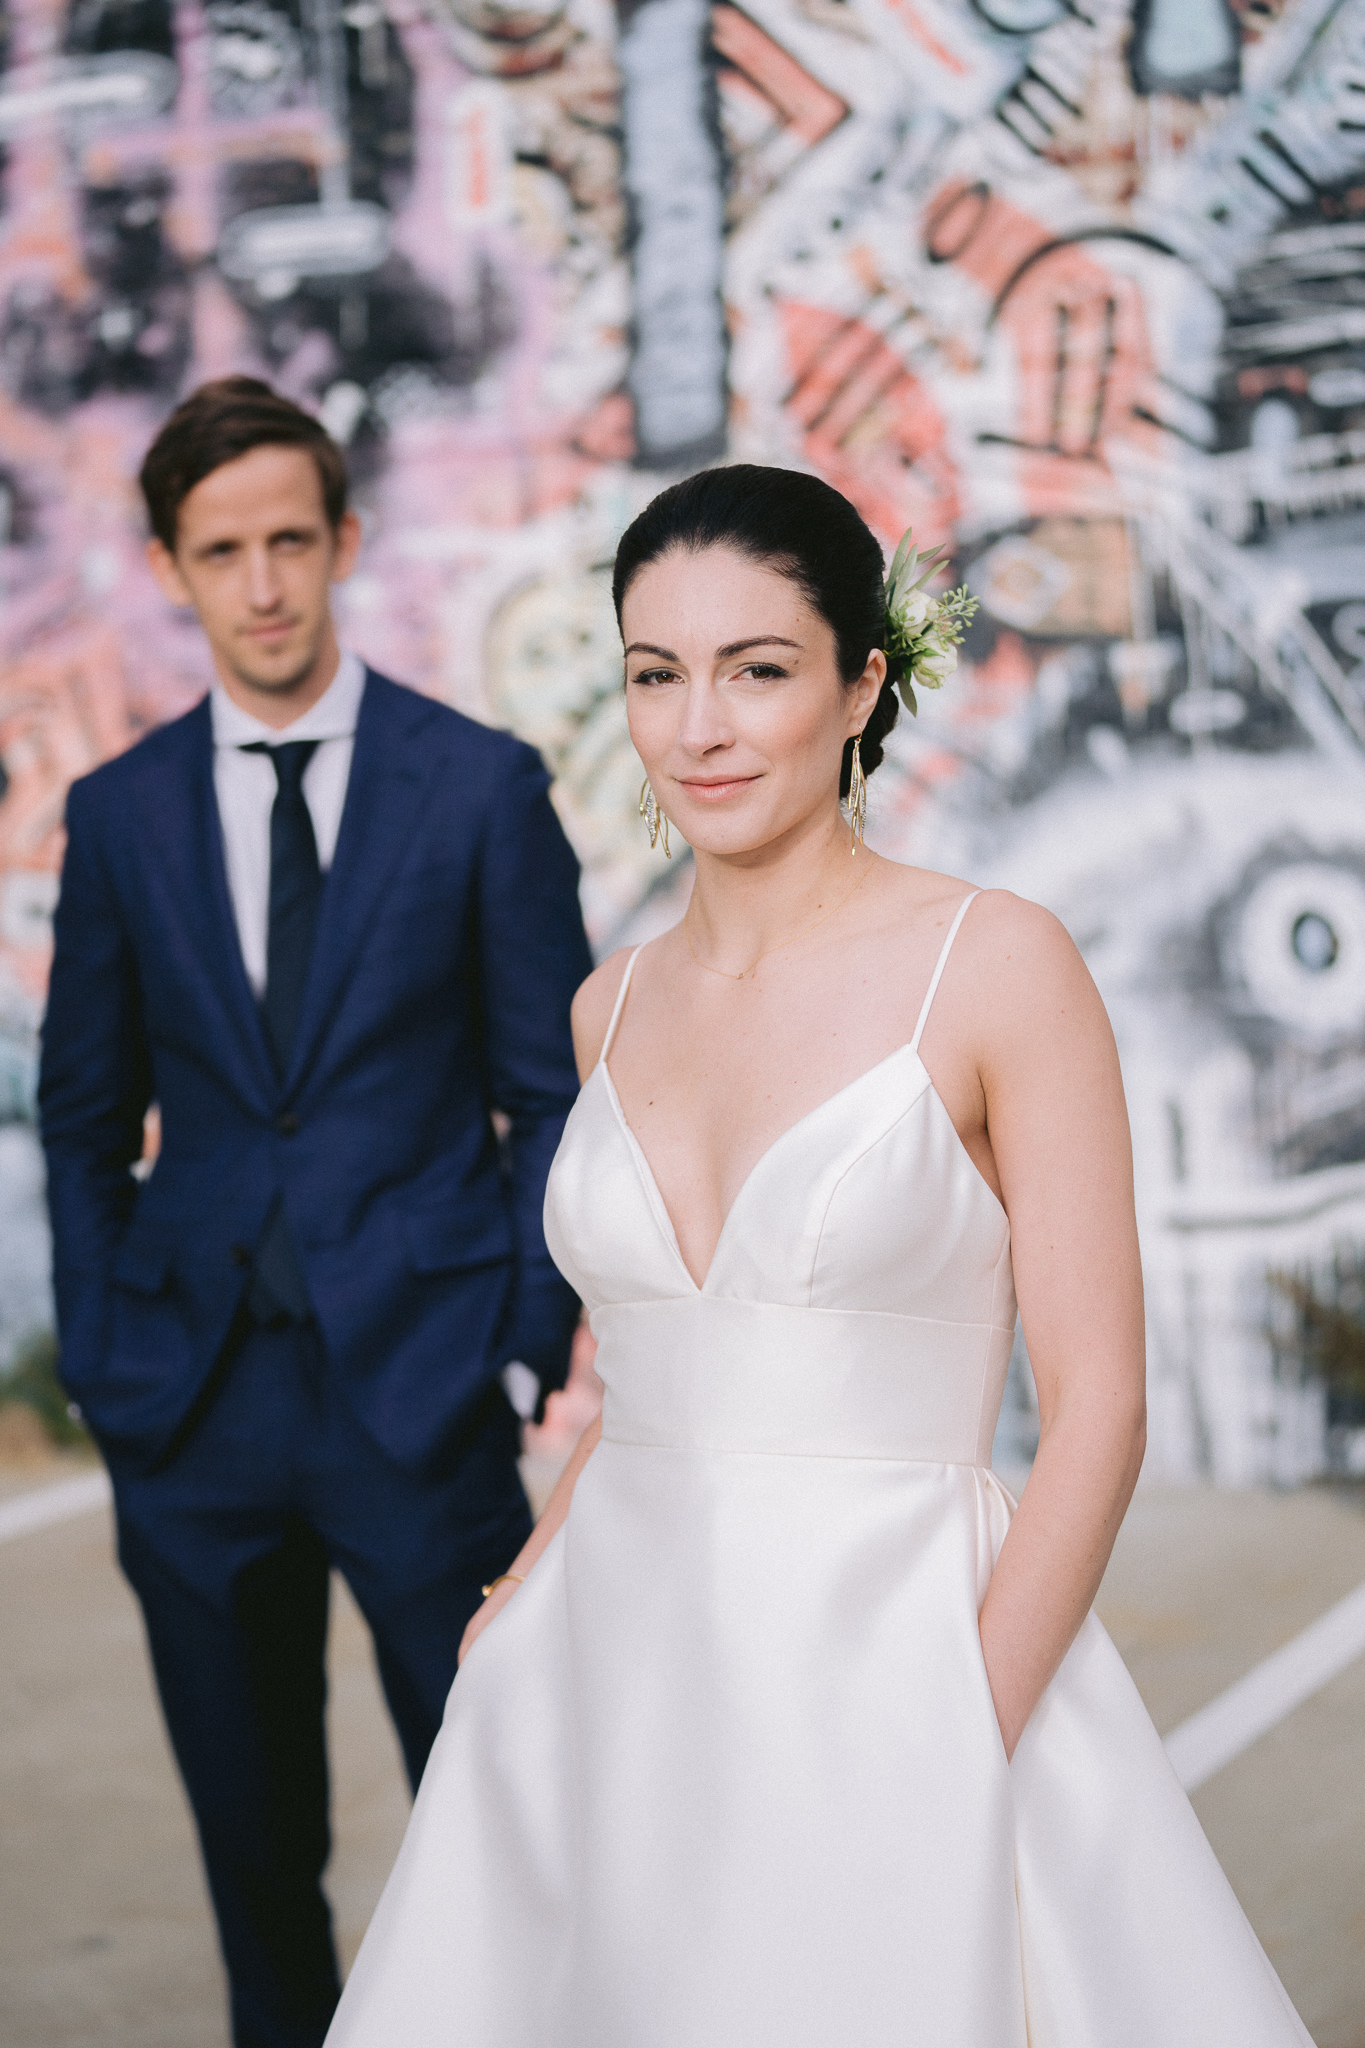 fine art portrait wedding photo in front of graffiti wall in san francisco - bride is in focus and groom is blurred out in the background.